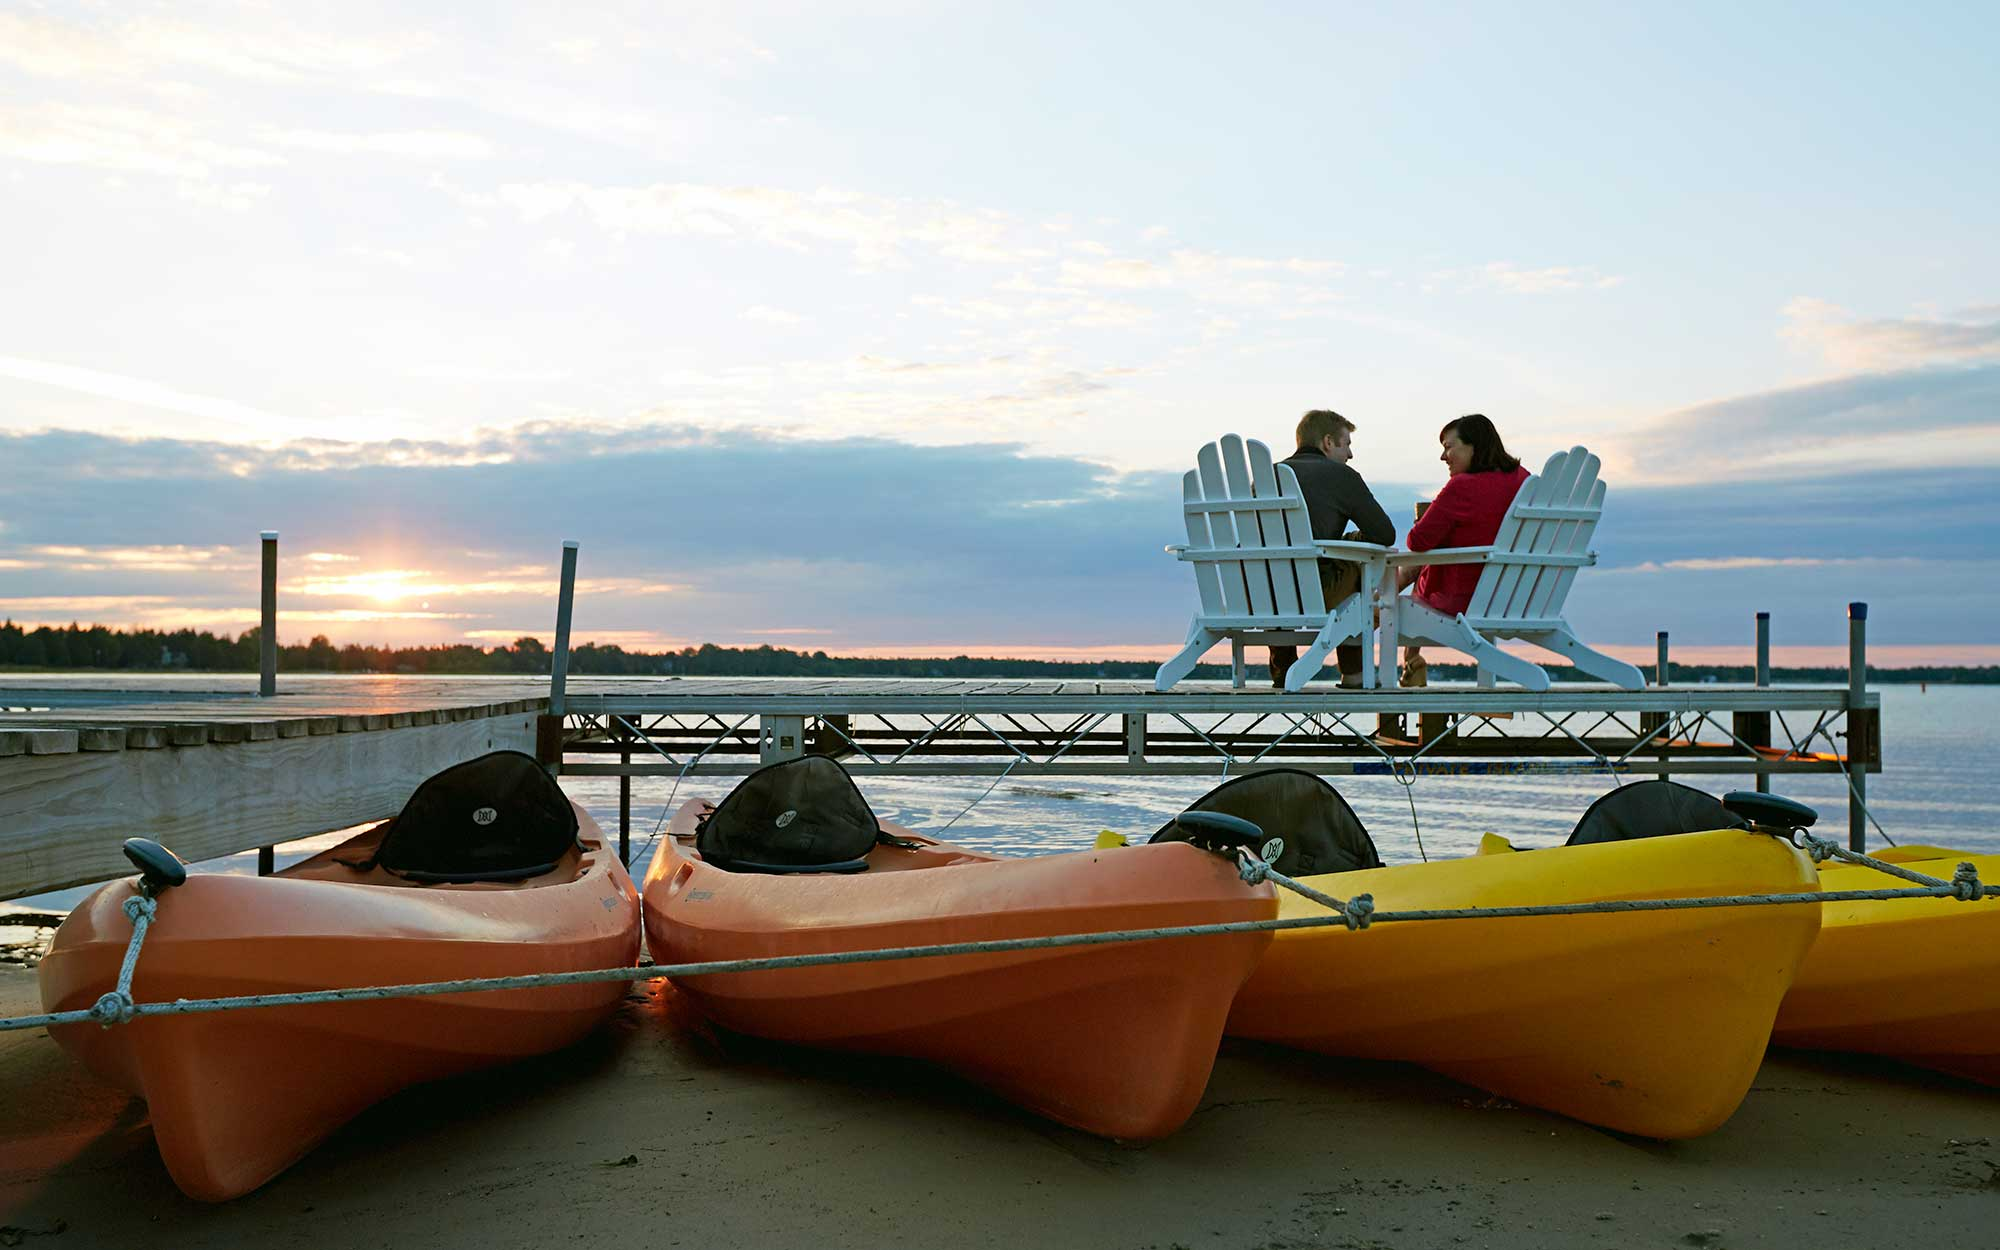 Best Romantic Summer Getaways: Door County, WI